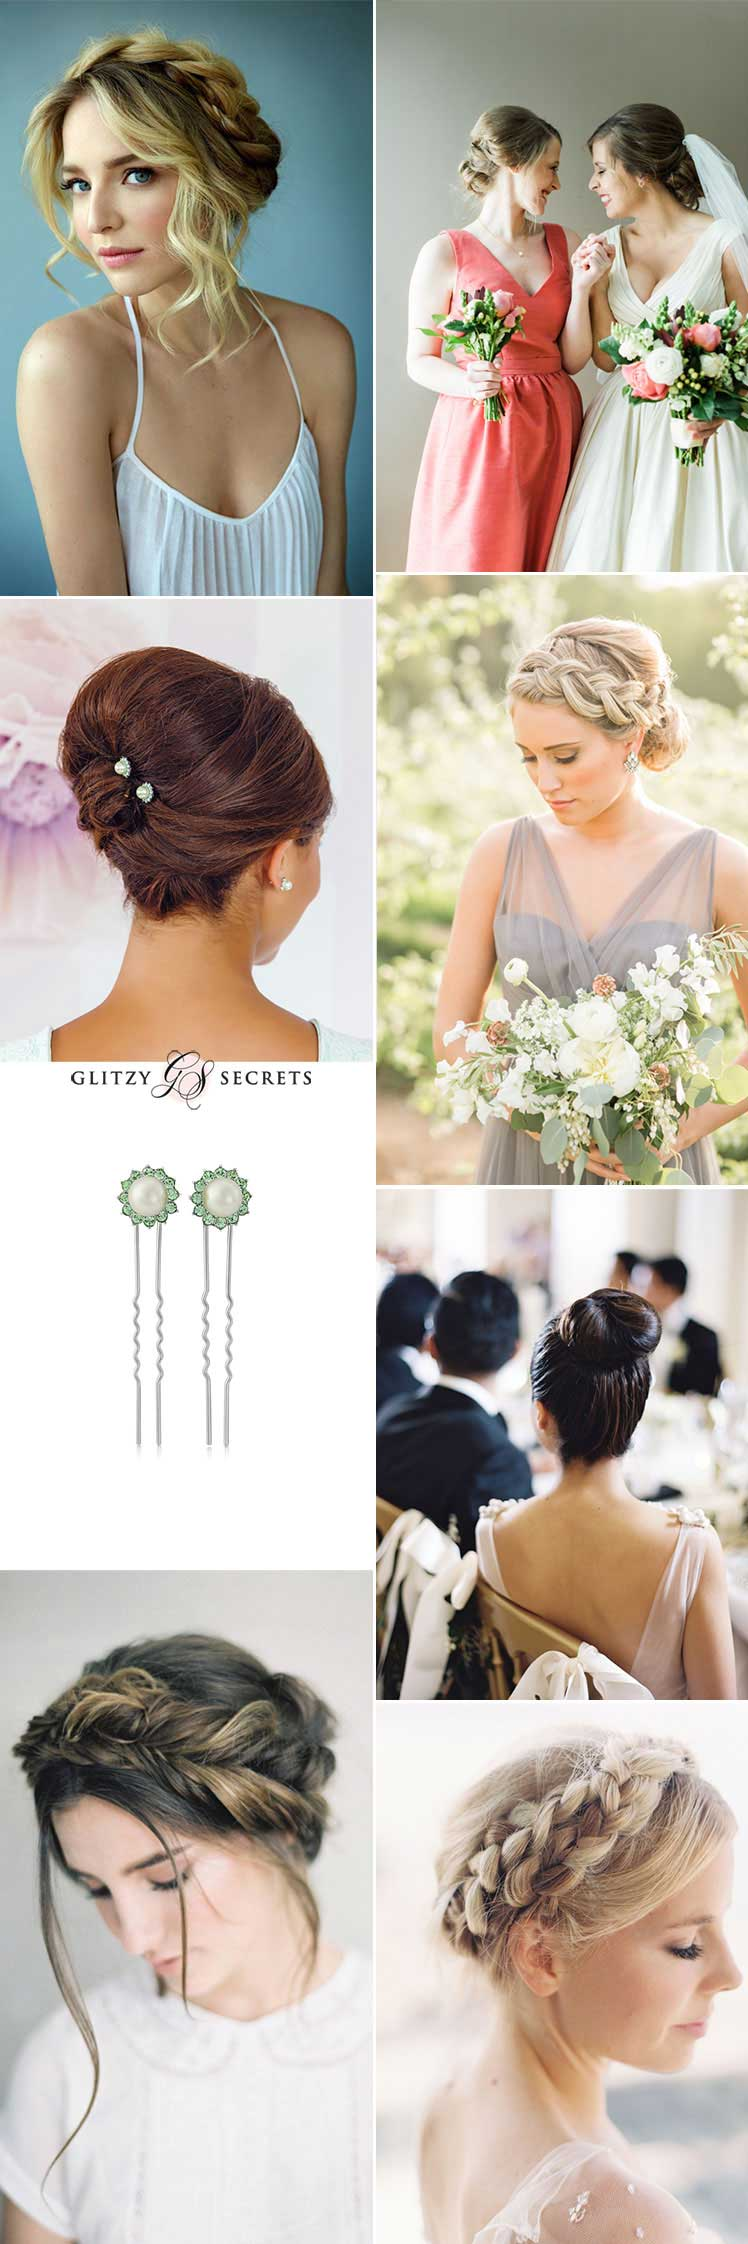 Bridesmaid up hairstyle inspiration